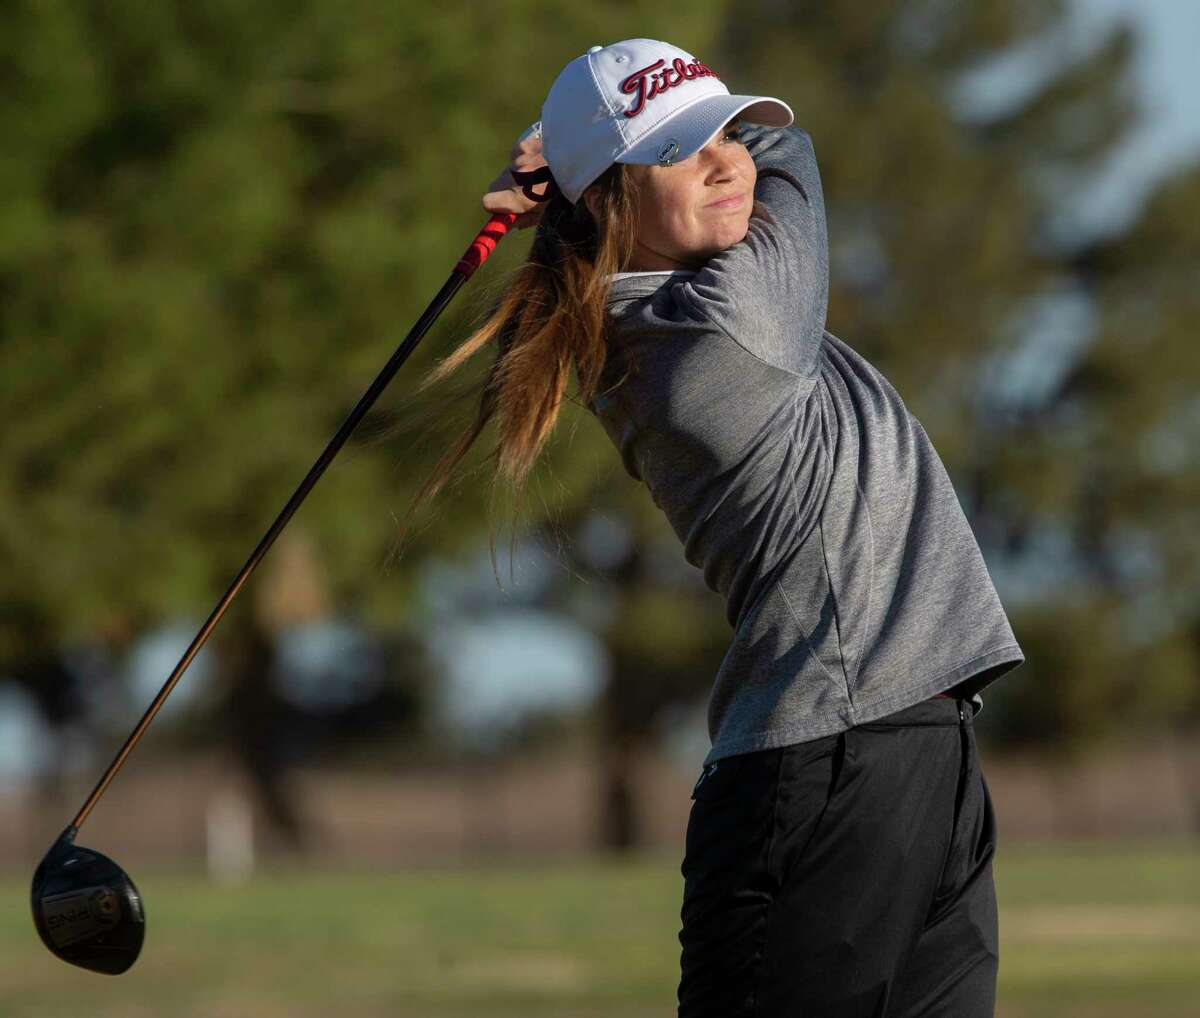 Lee High's Gracie O'Brien follows her shot 03/23/21 at Ranchland Hills Golf Club during the second day of play in the District2-6A golf tournament. Tim Fischer/Reporter-Telegram